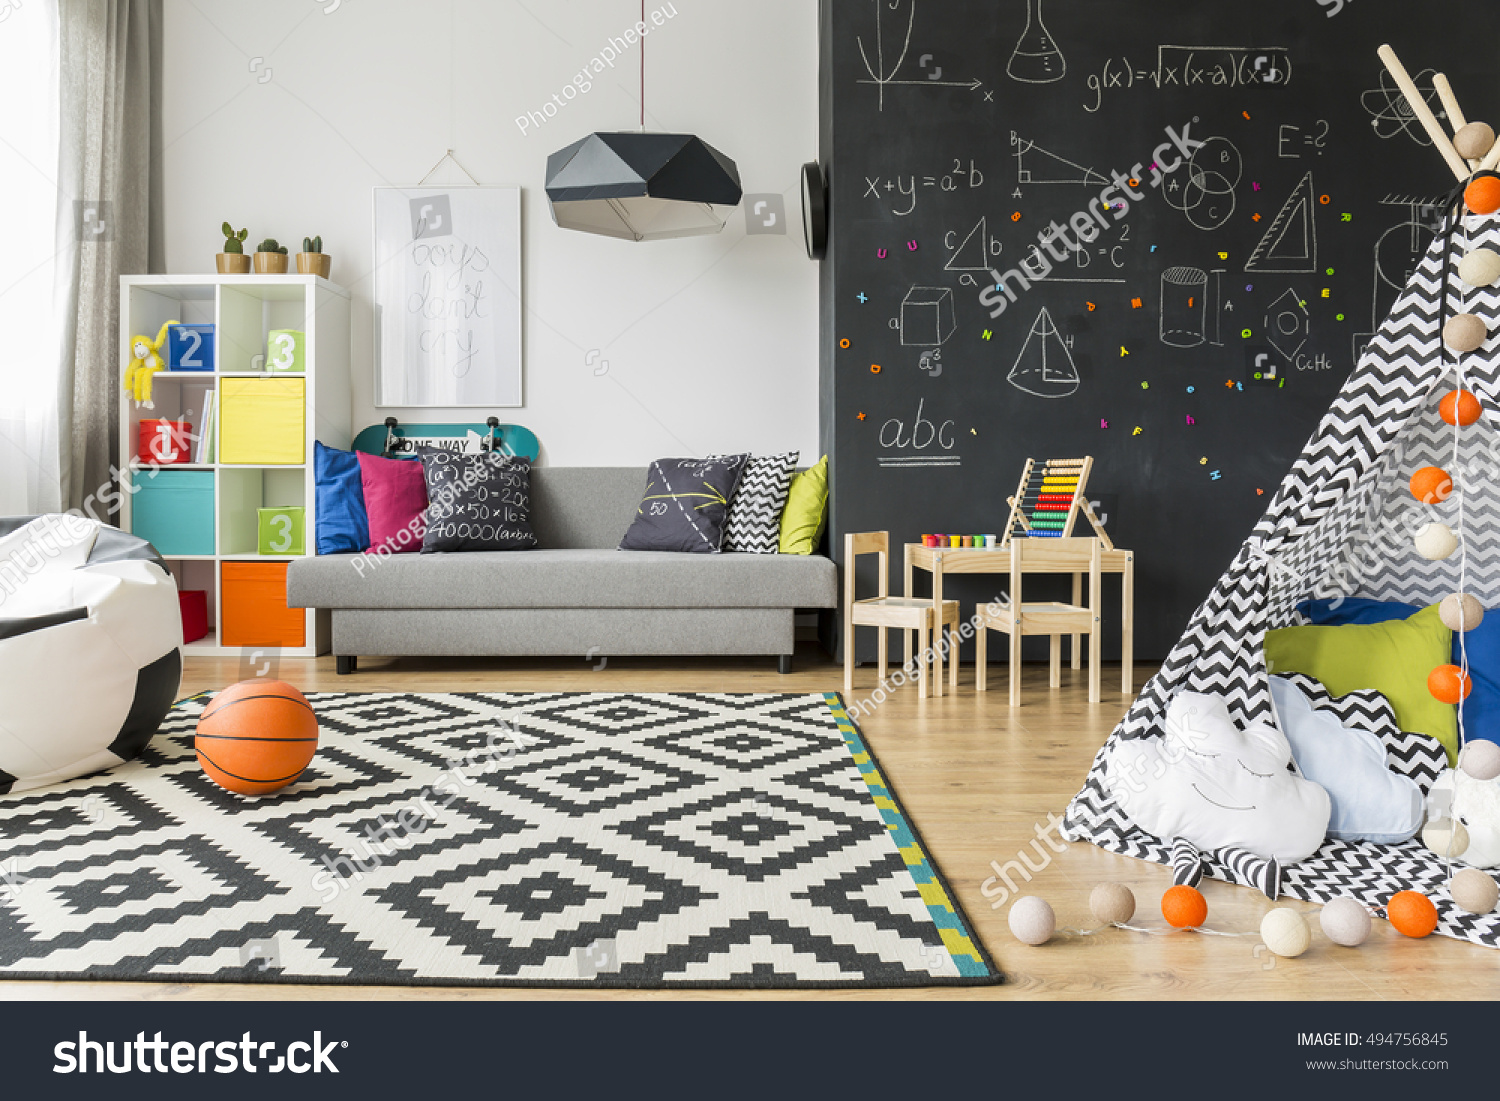 Abo Living At Home Spacious Black White Child Room Window Stock Photo Edit Now 494756845